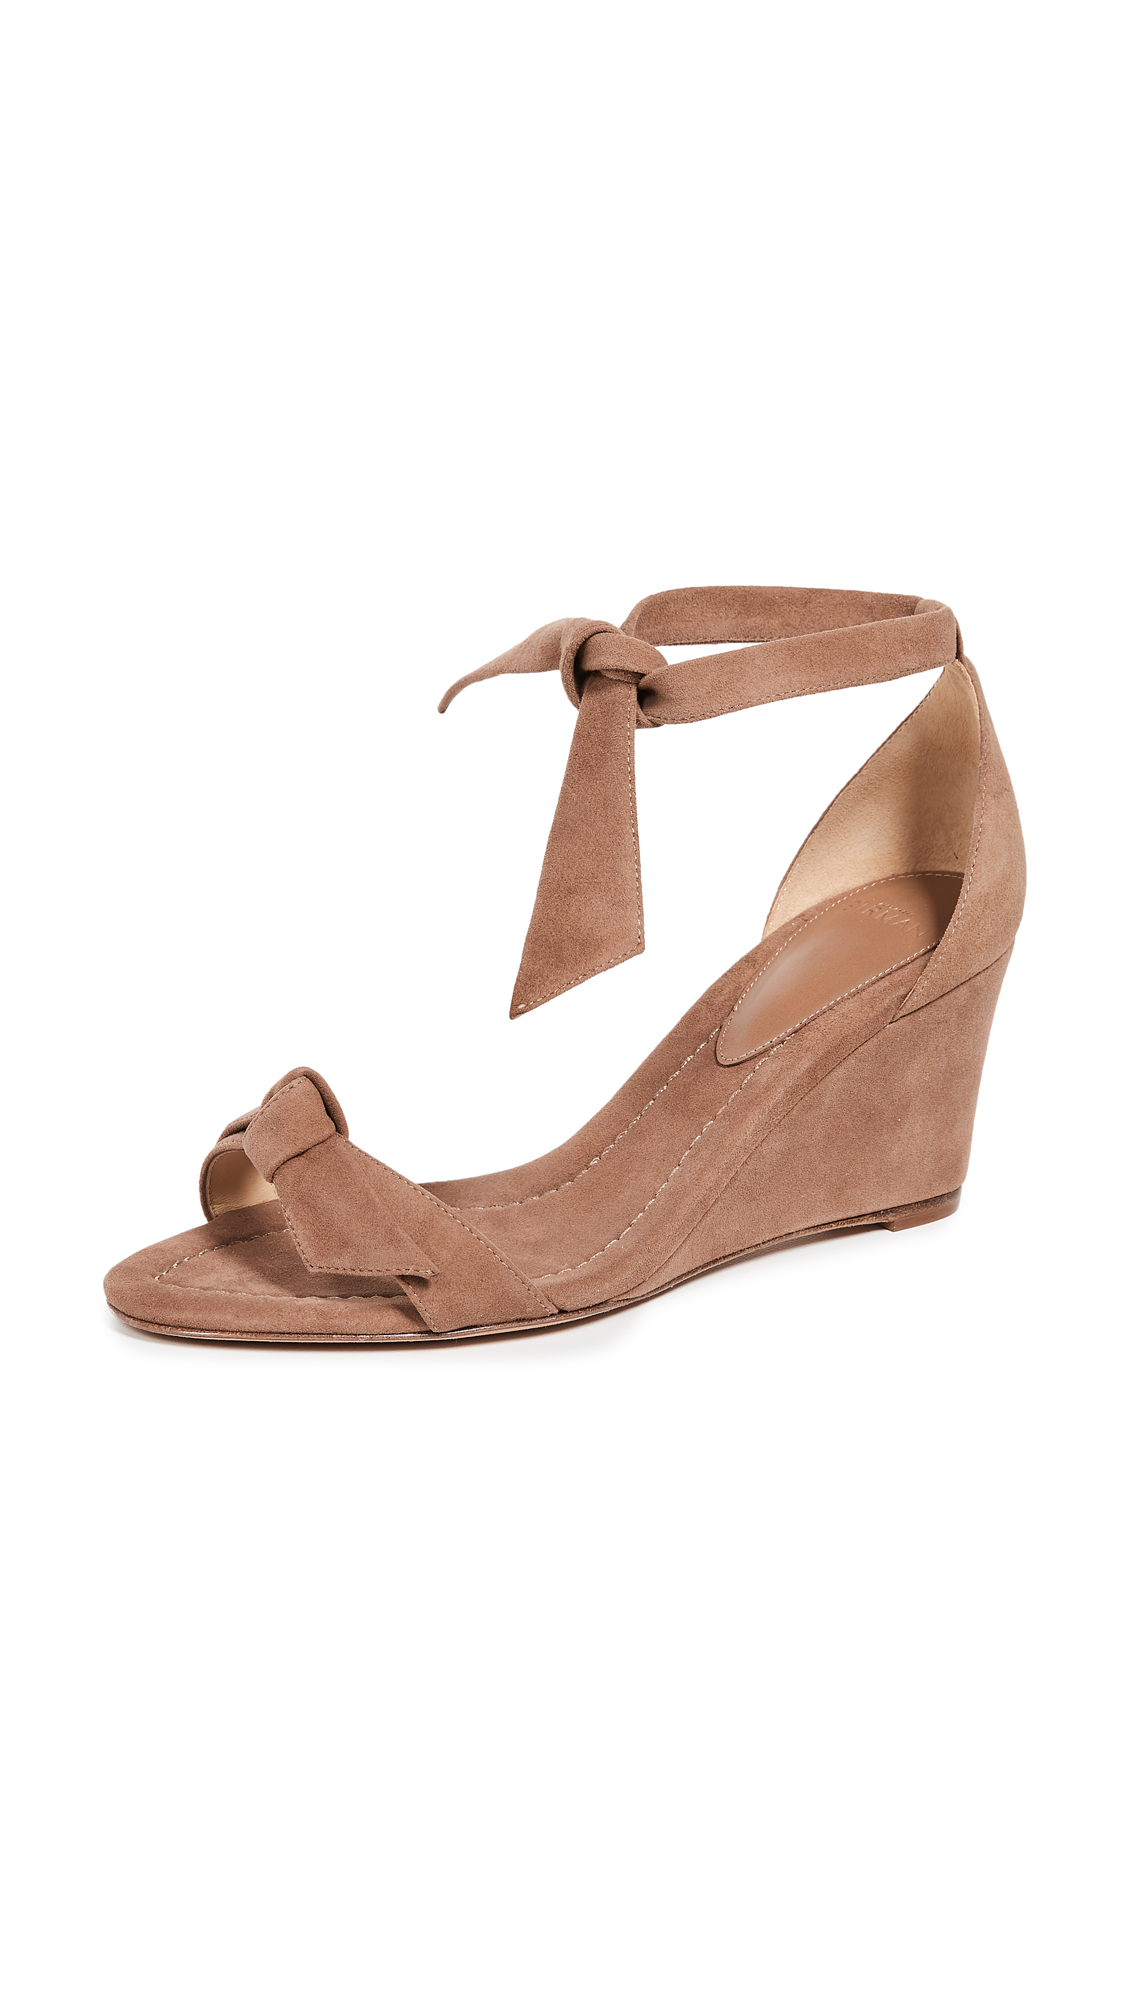 Alexandre Birman Clarita Demi 75mm Wedge Sandals - Light Beige/Natural